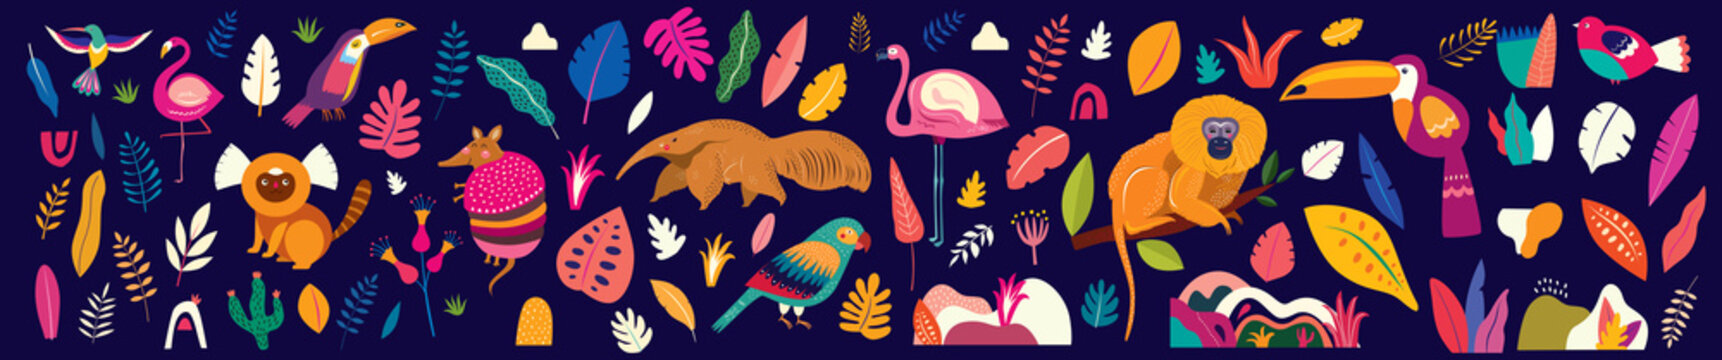 Animals big collection. Animals of Brazil. Vector colorful set of  illustrations with tropical flowers, leaves, monkey, flamingo, anteater and birds. Brazil tropical pattern.  Rio de janeiro pattern,.